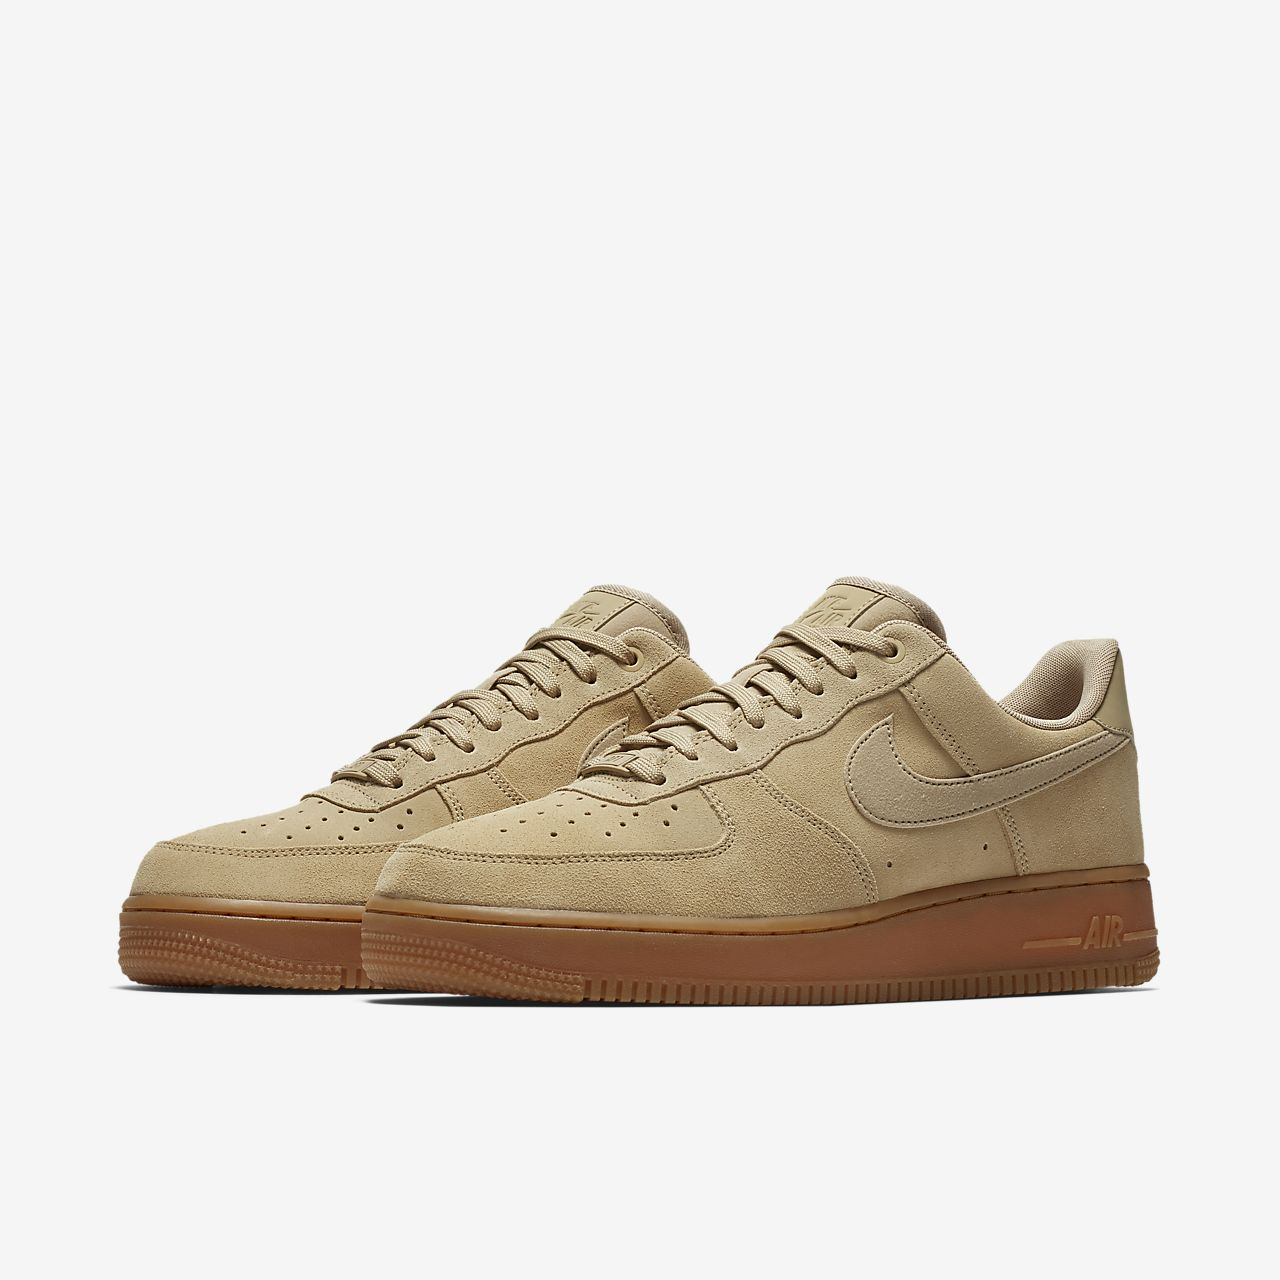 nike air force 1 suede tan